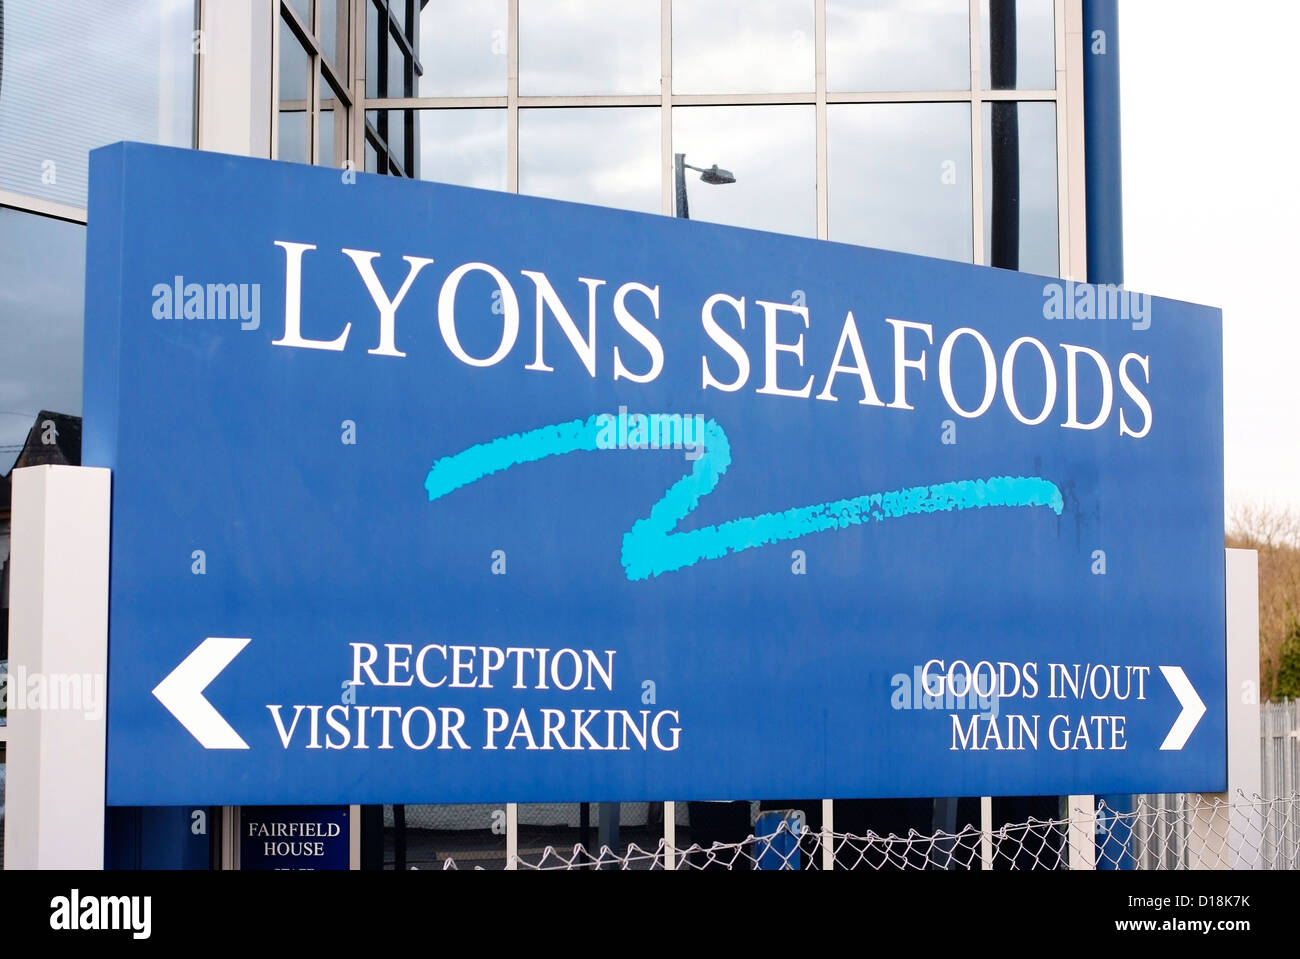 Lyons Seafoods at Warminster. - Stock Image